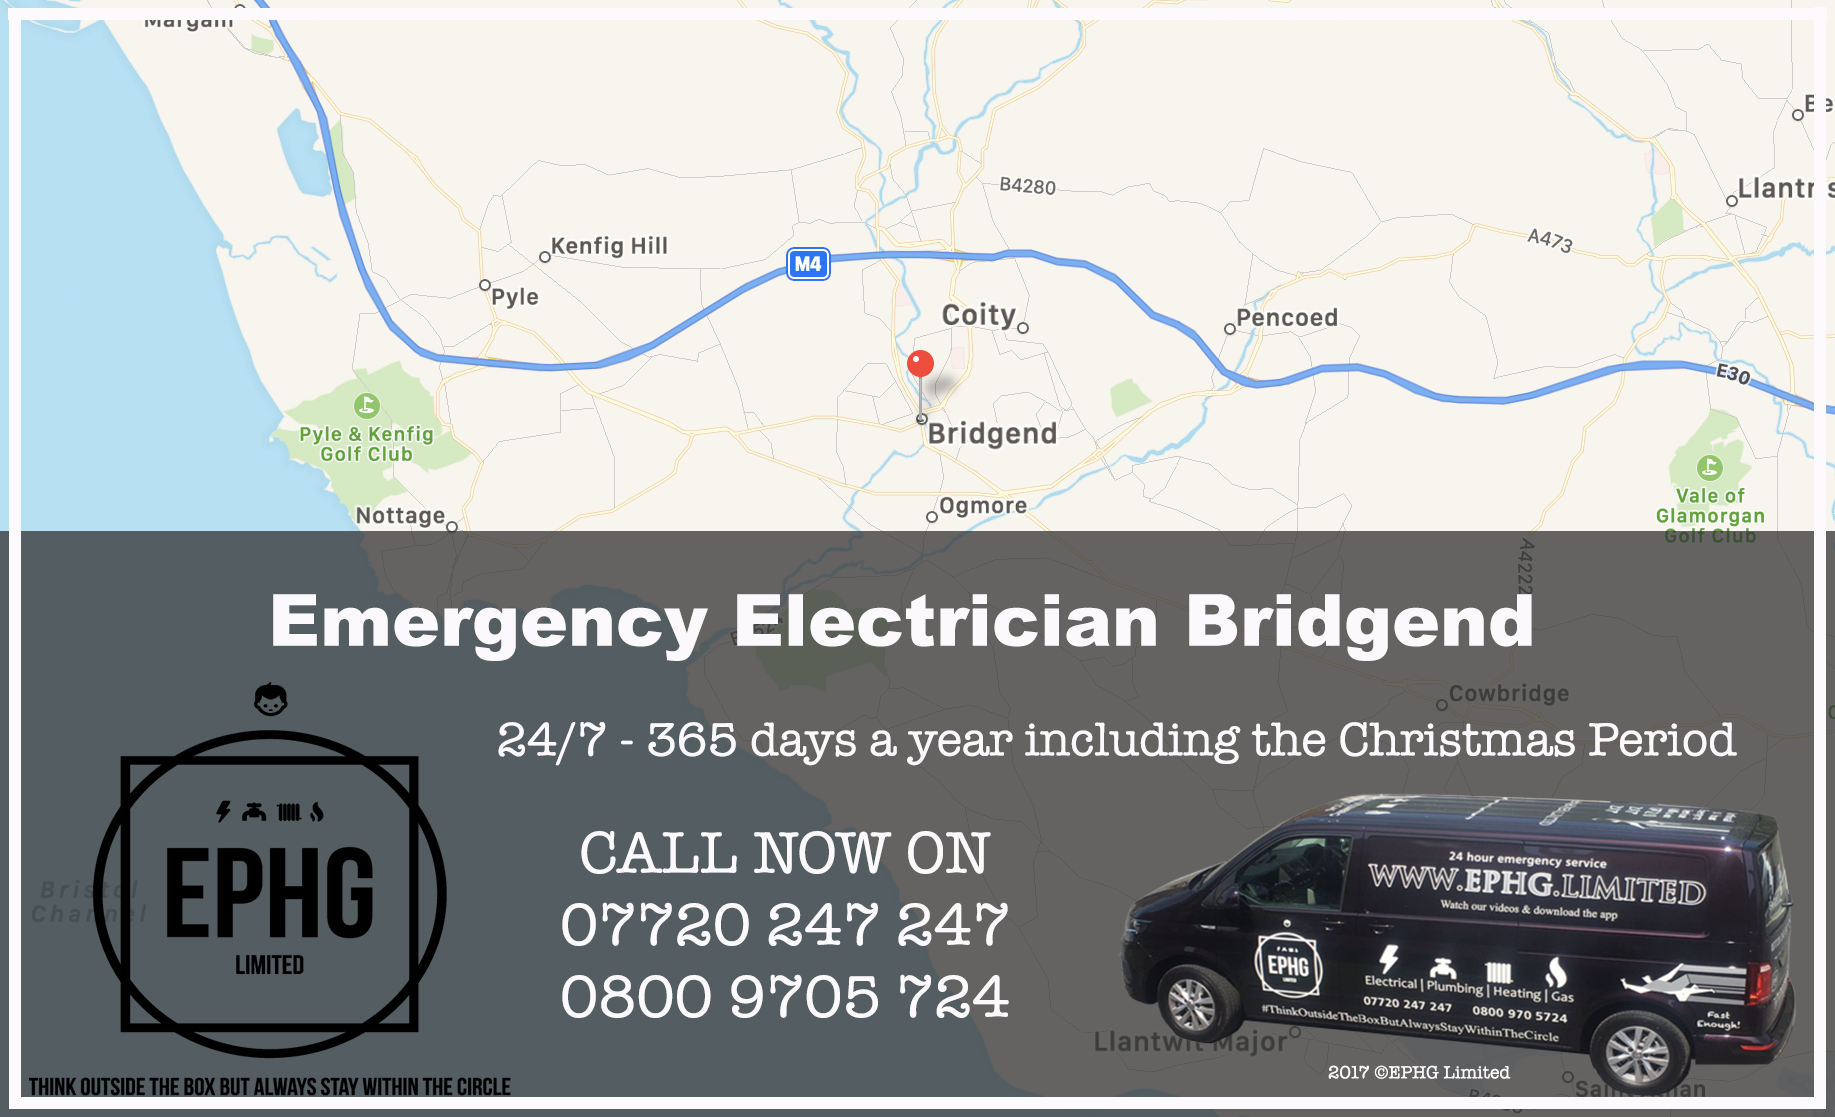 Emergency Electrician Bridgend